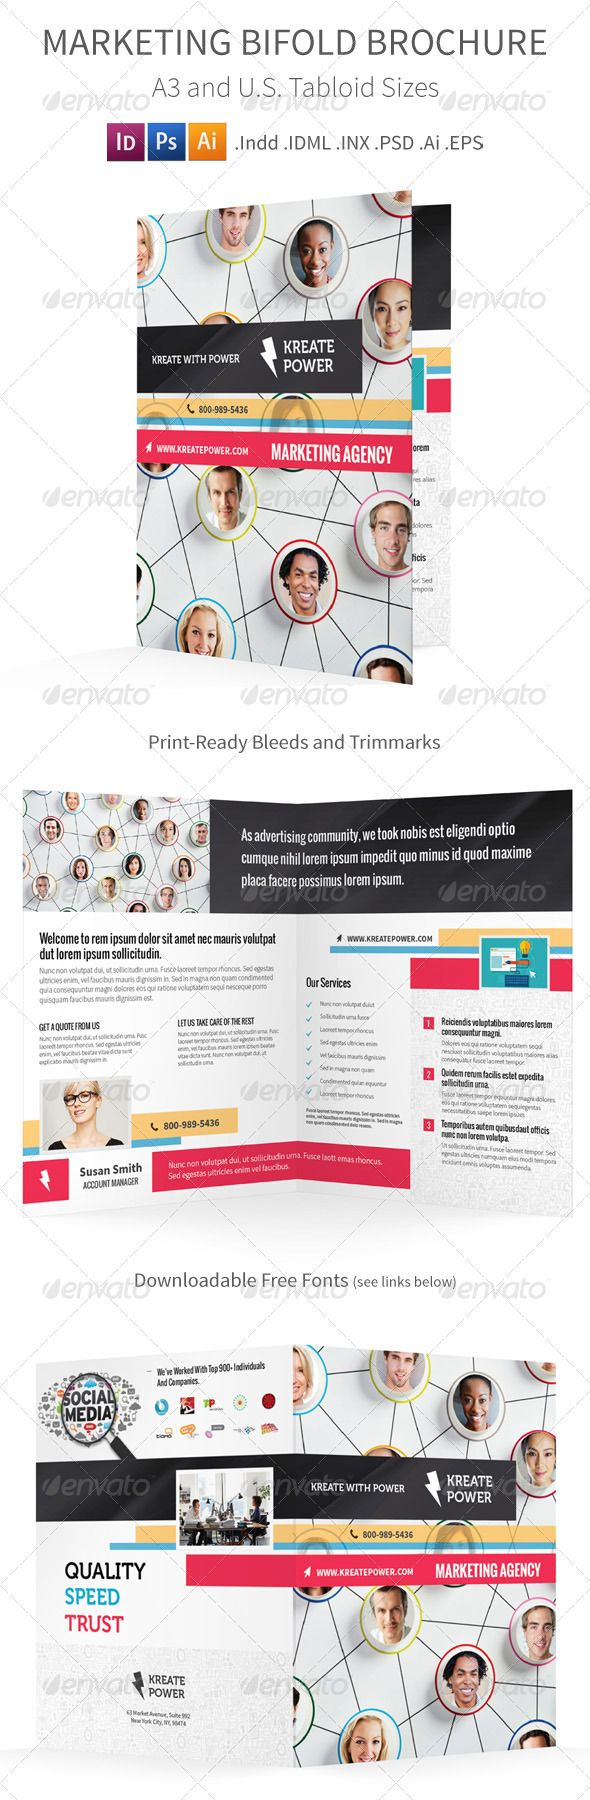 64 best brochure images on Pinterest | Brochures, Books and ...